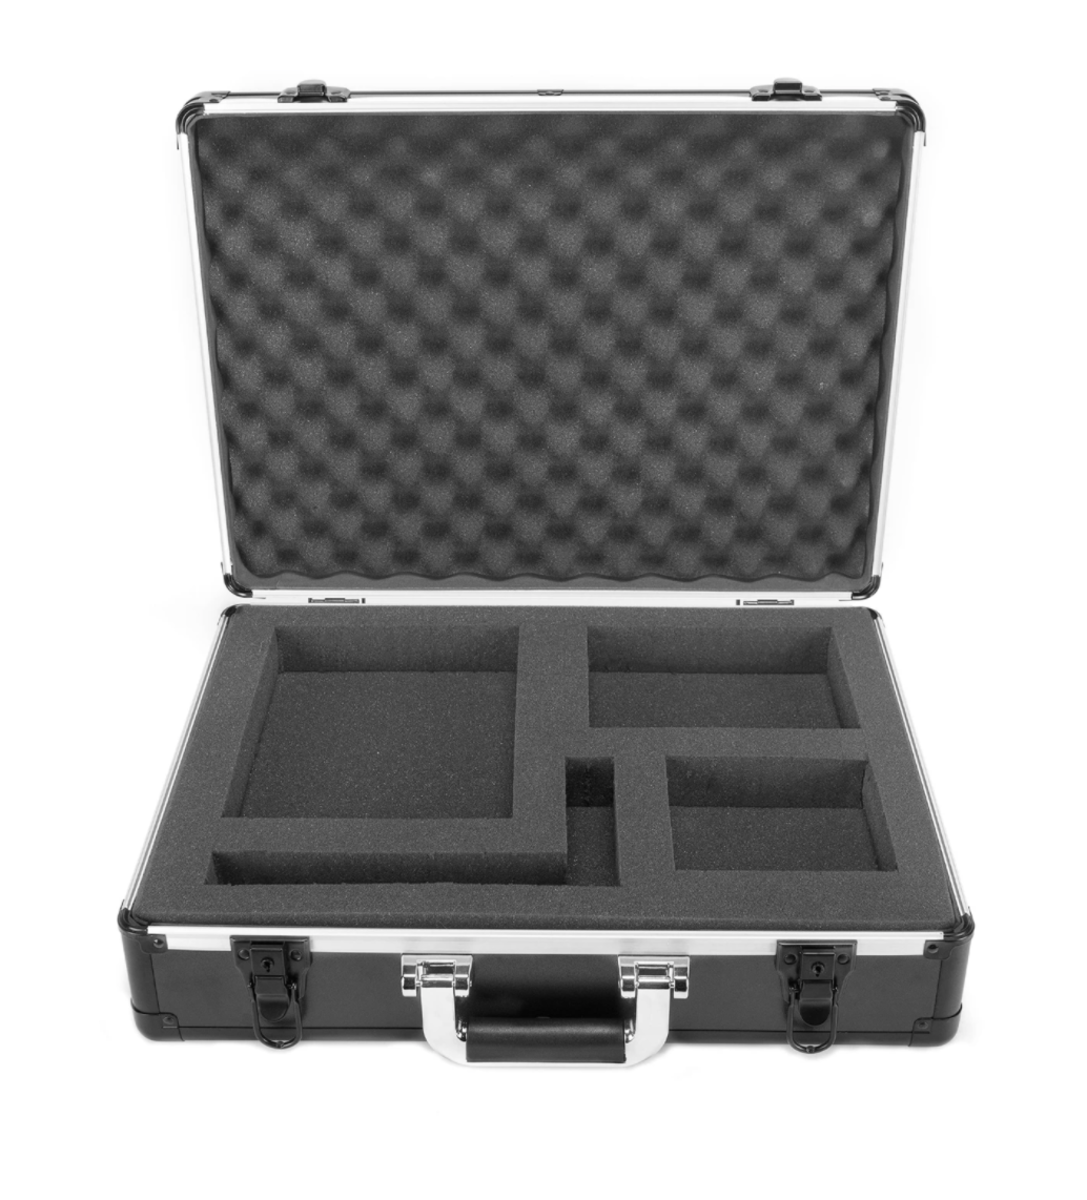 Analog Cases After Customization